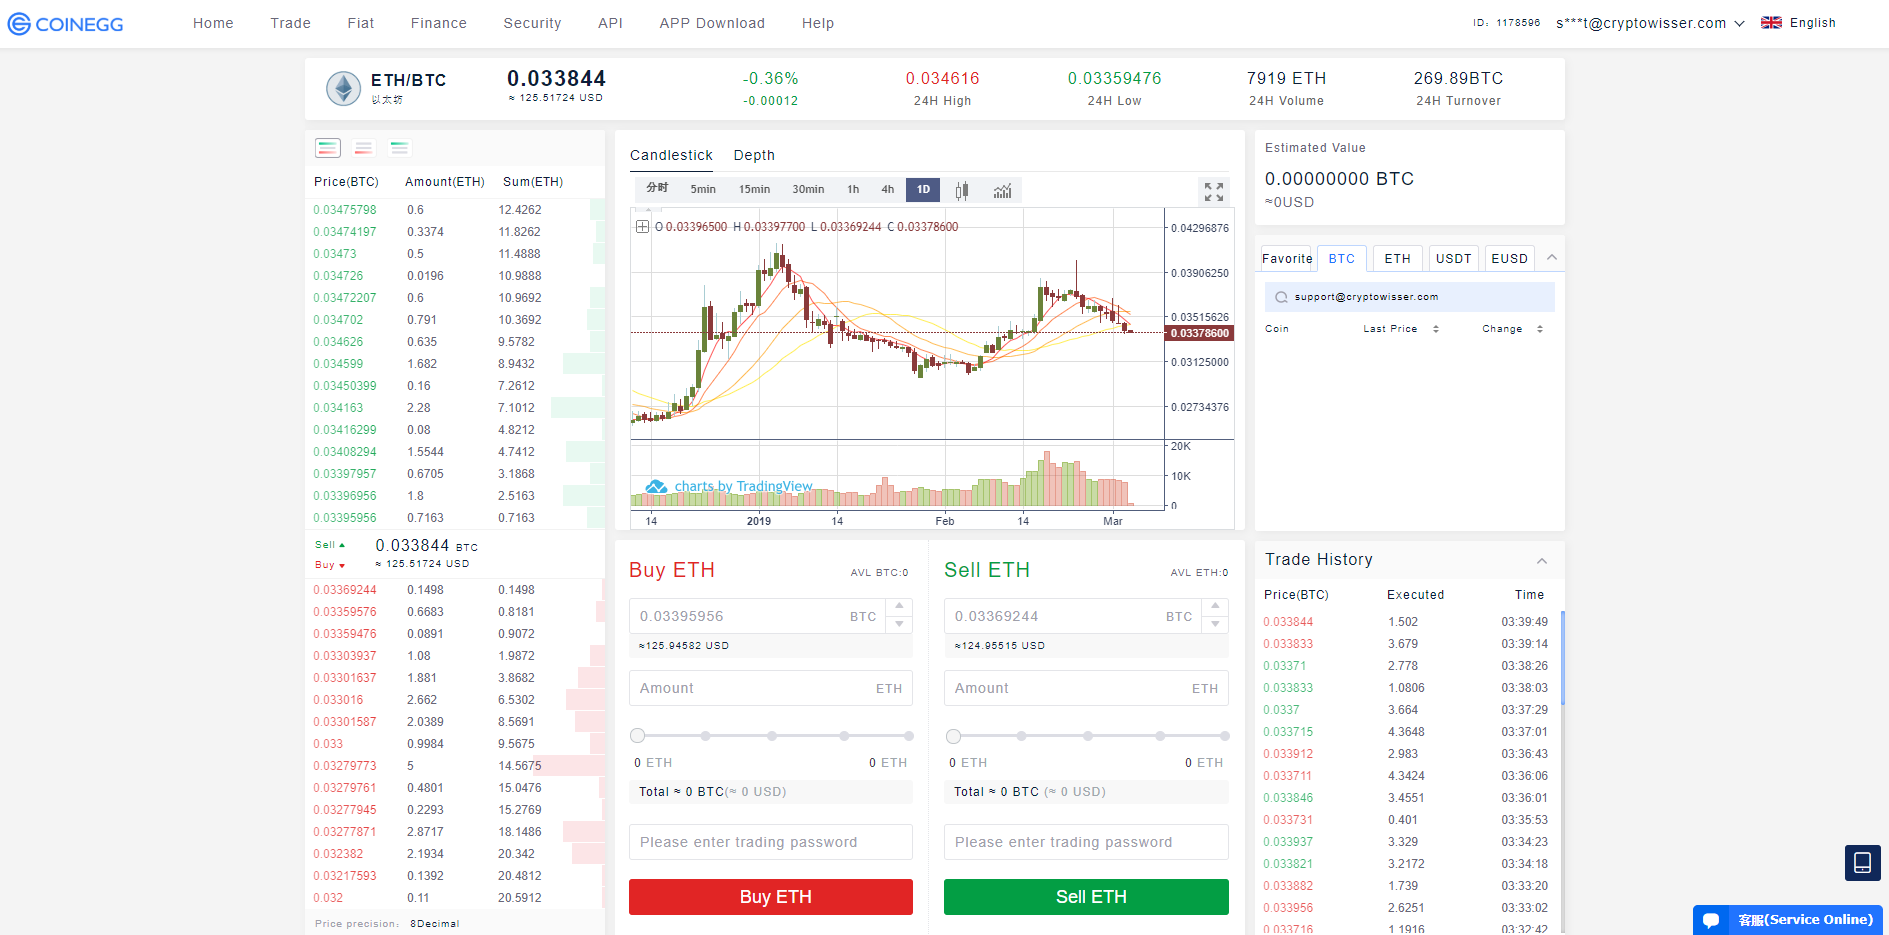 Coinegg Trading View